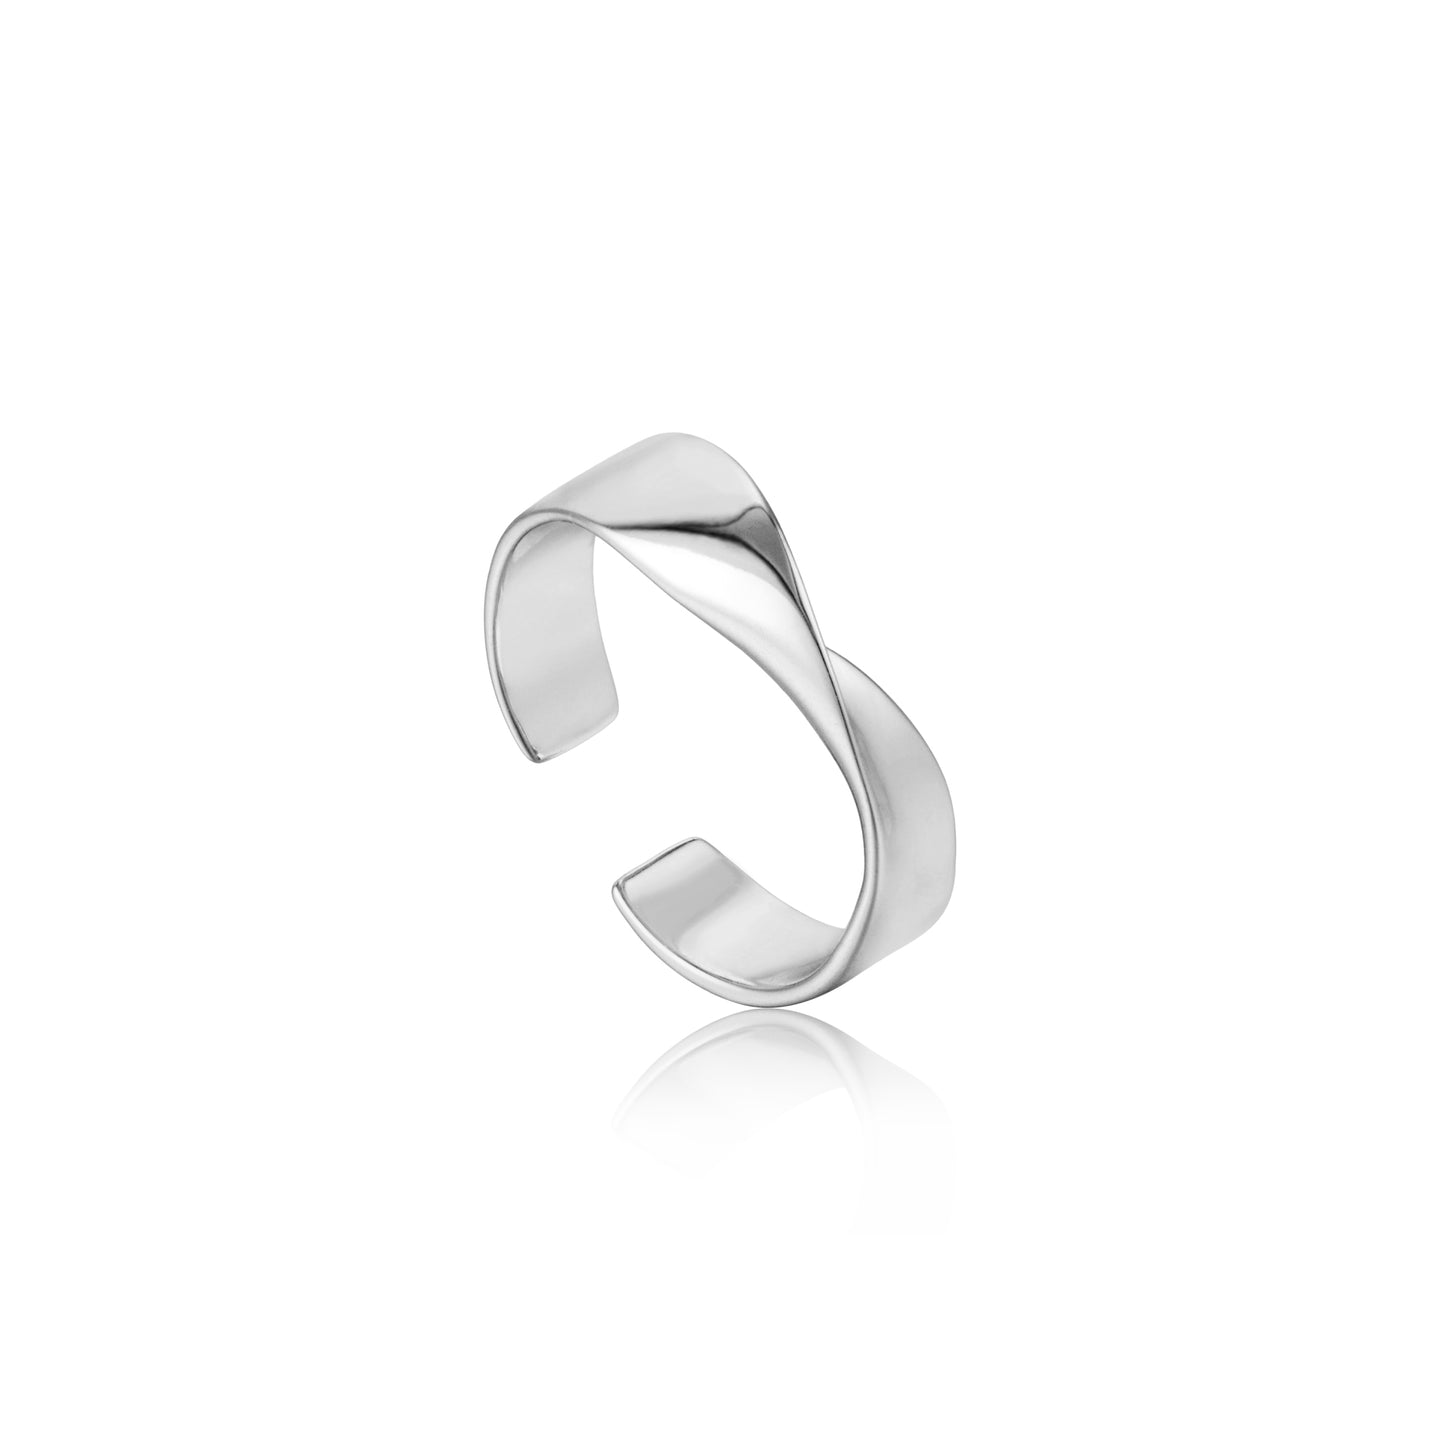 Silver Helix Adjustable Ring R012-01H